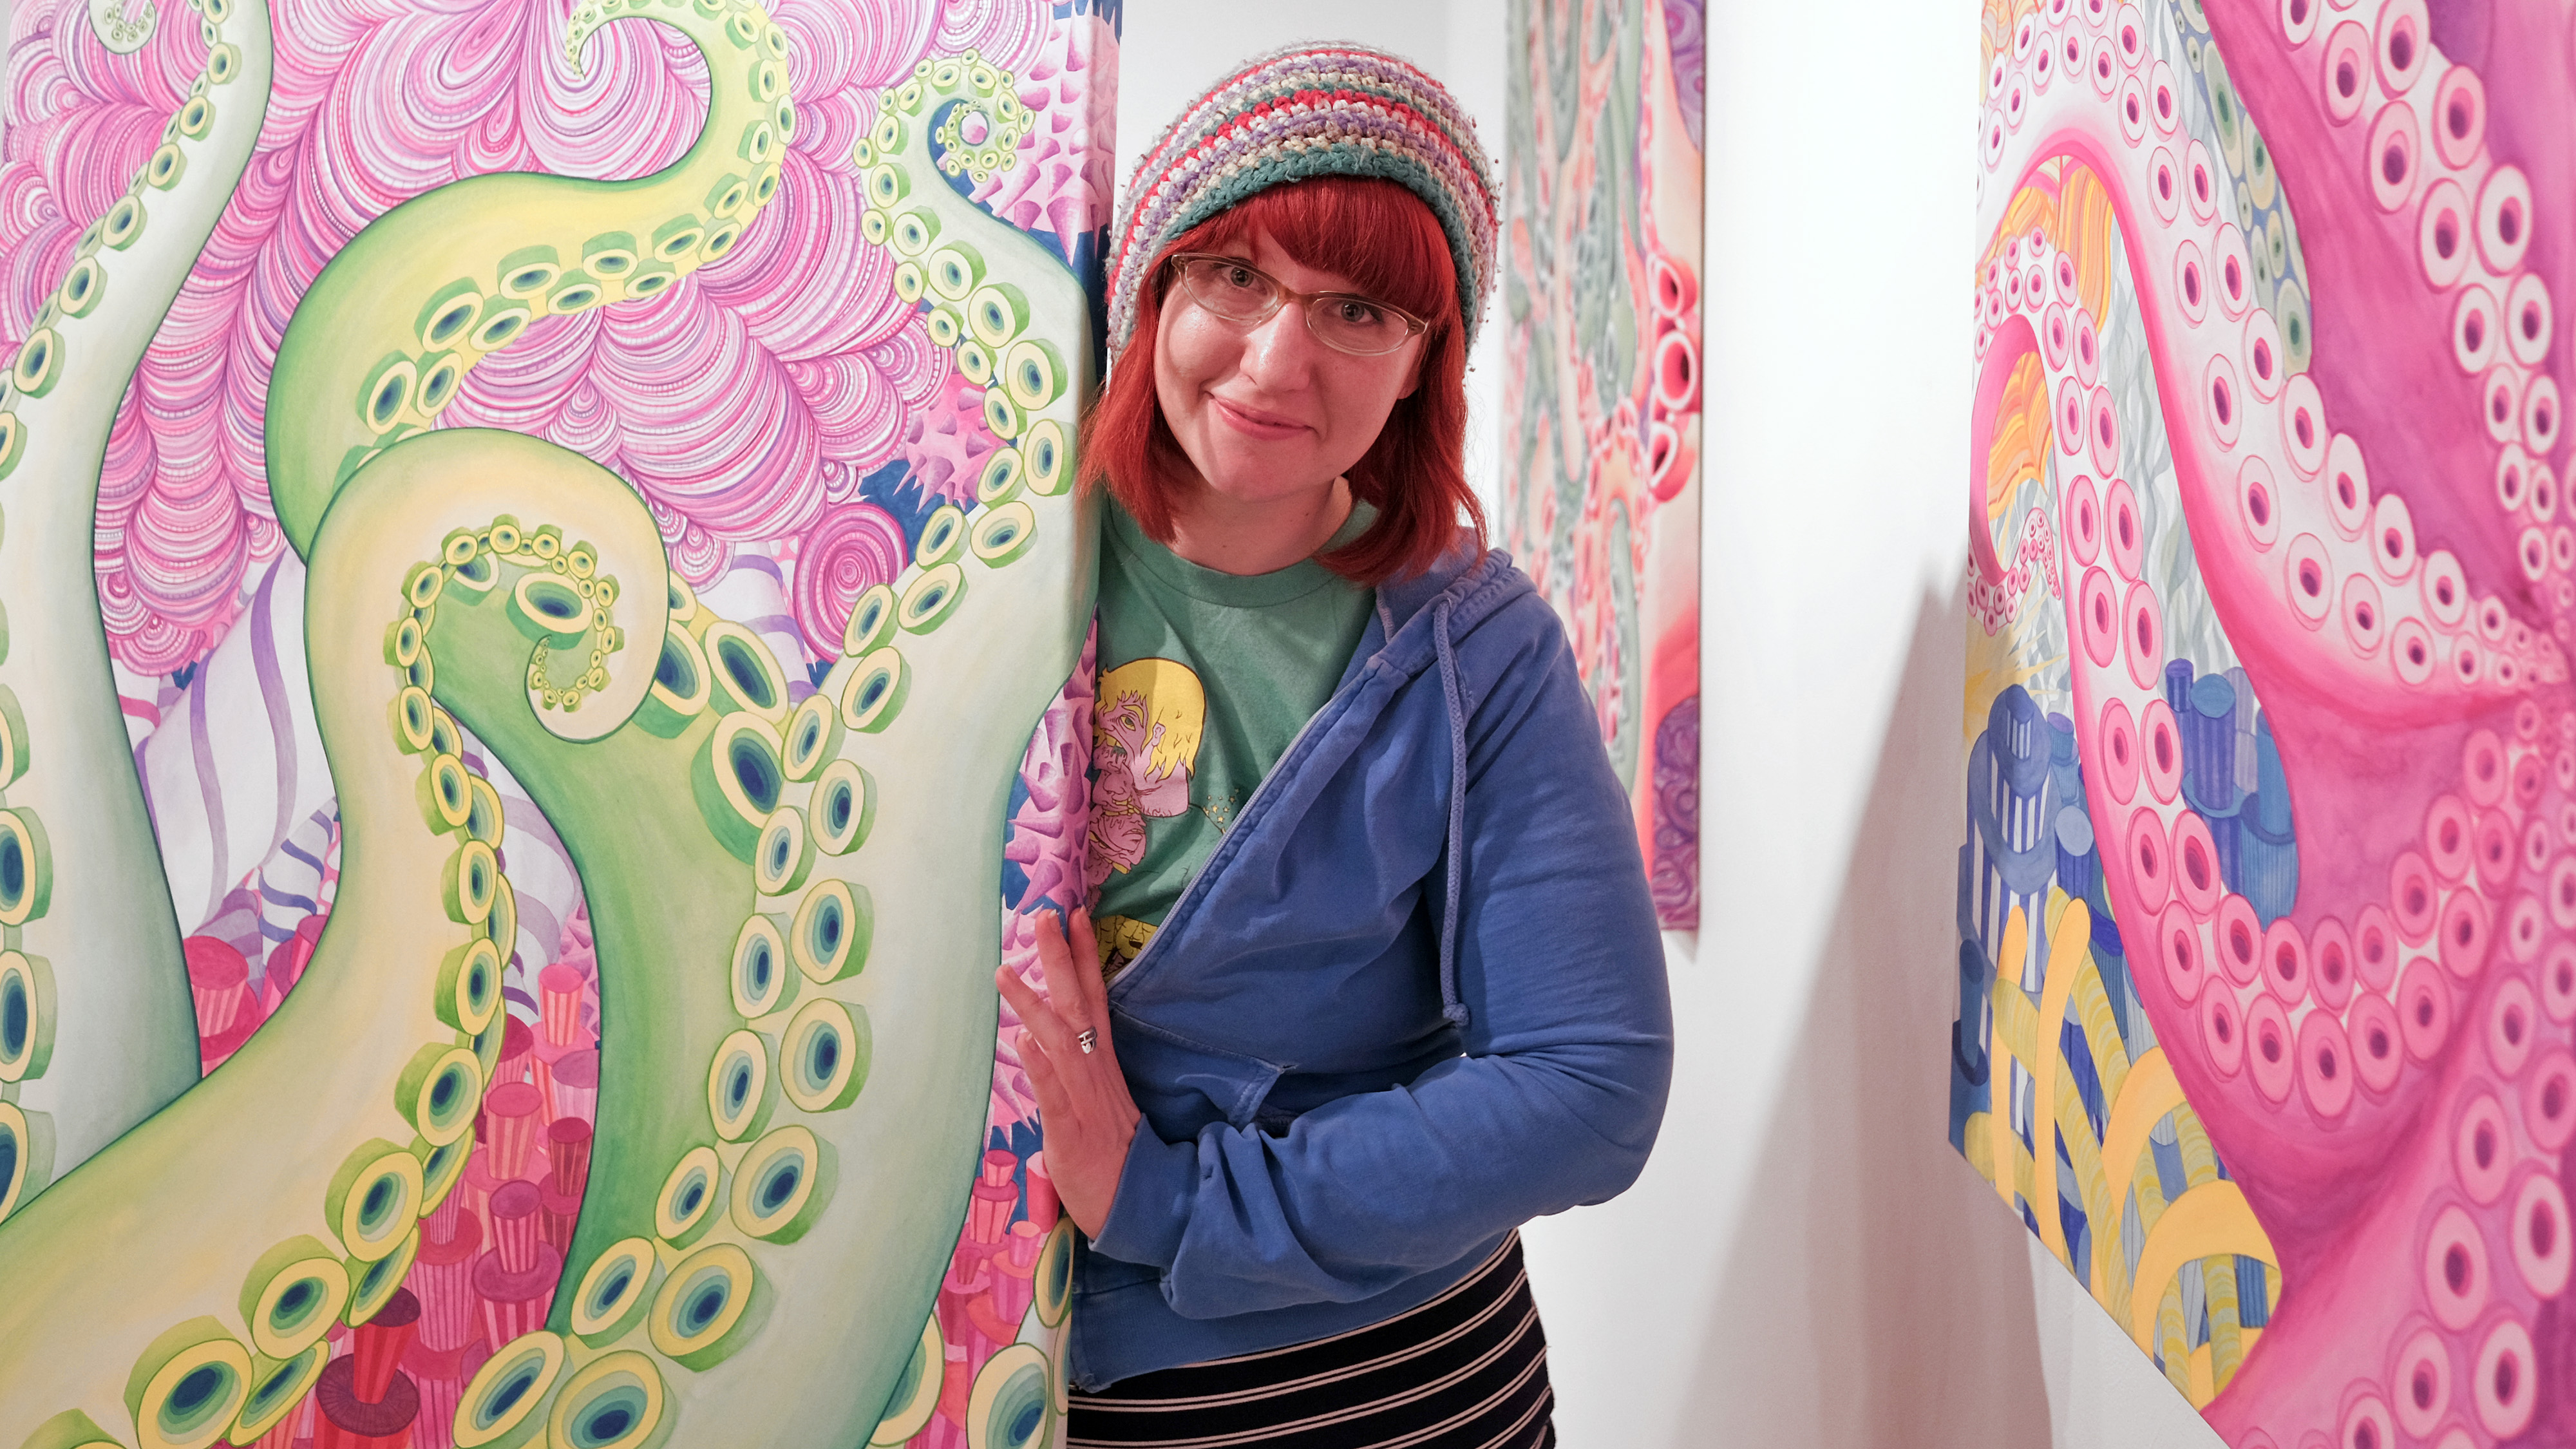 'Aqueous' brings watery images to Gallery Visio